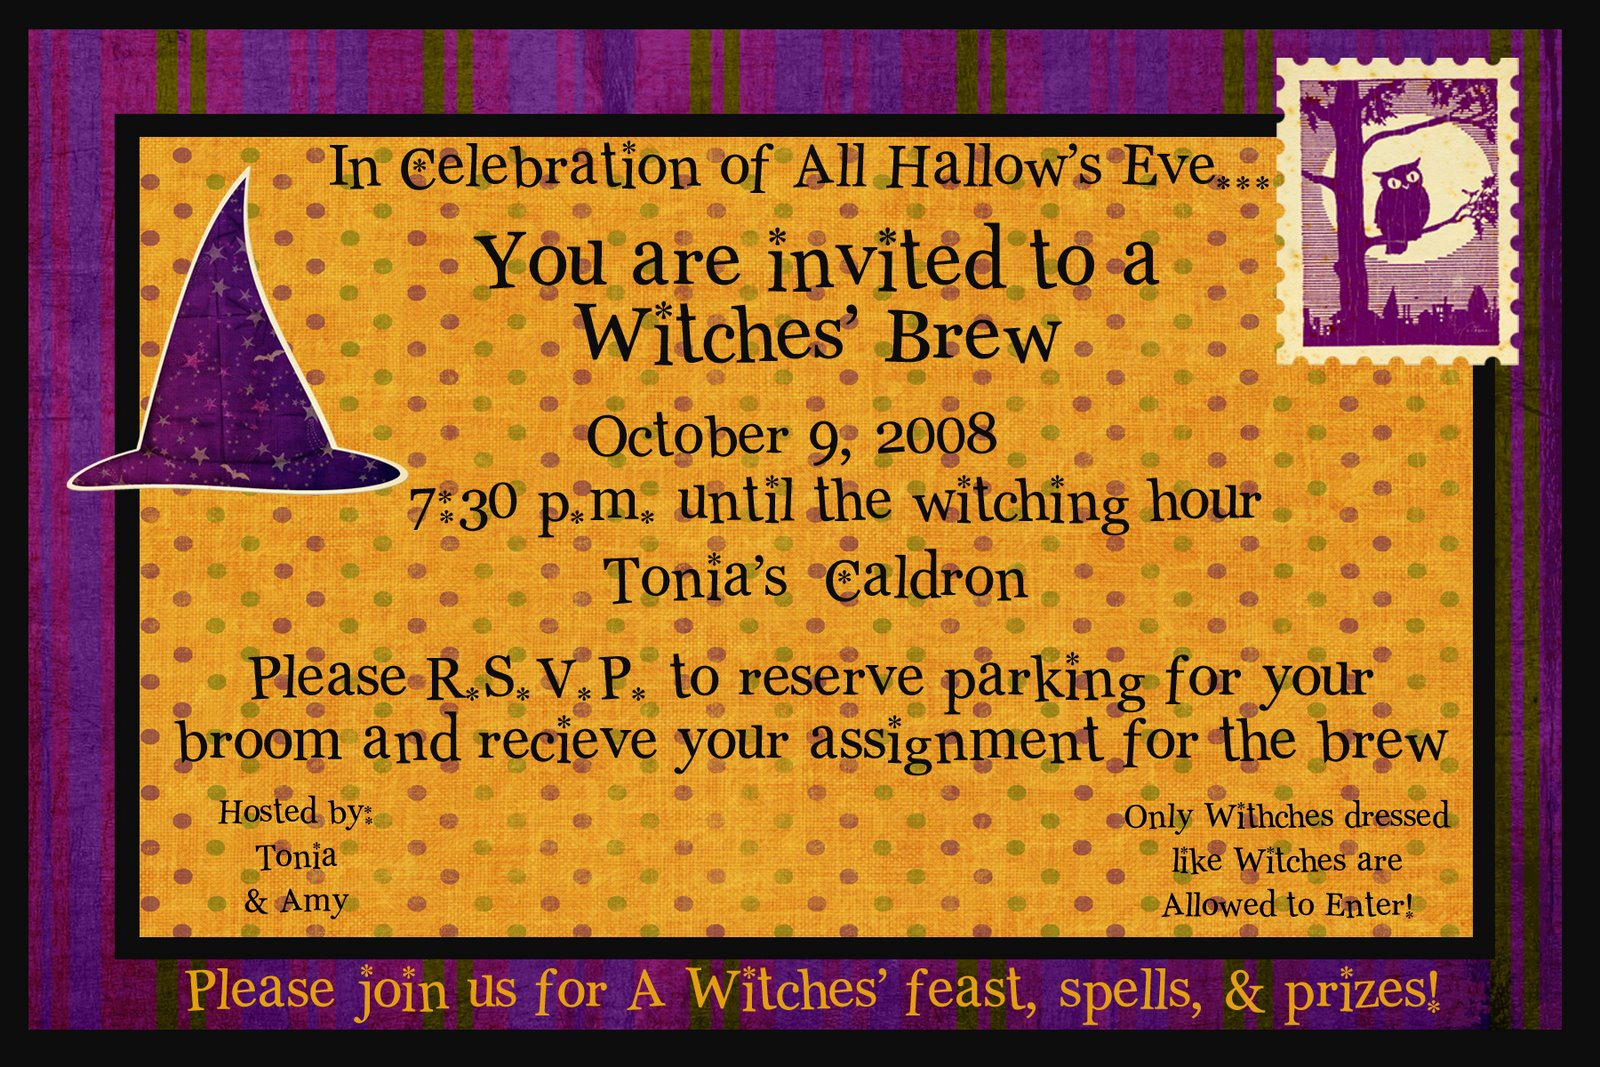 [witches+Brew+]